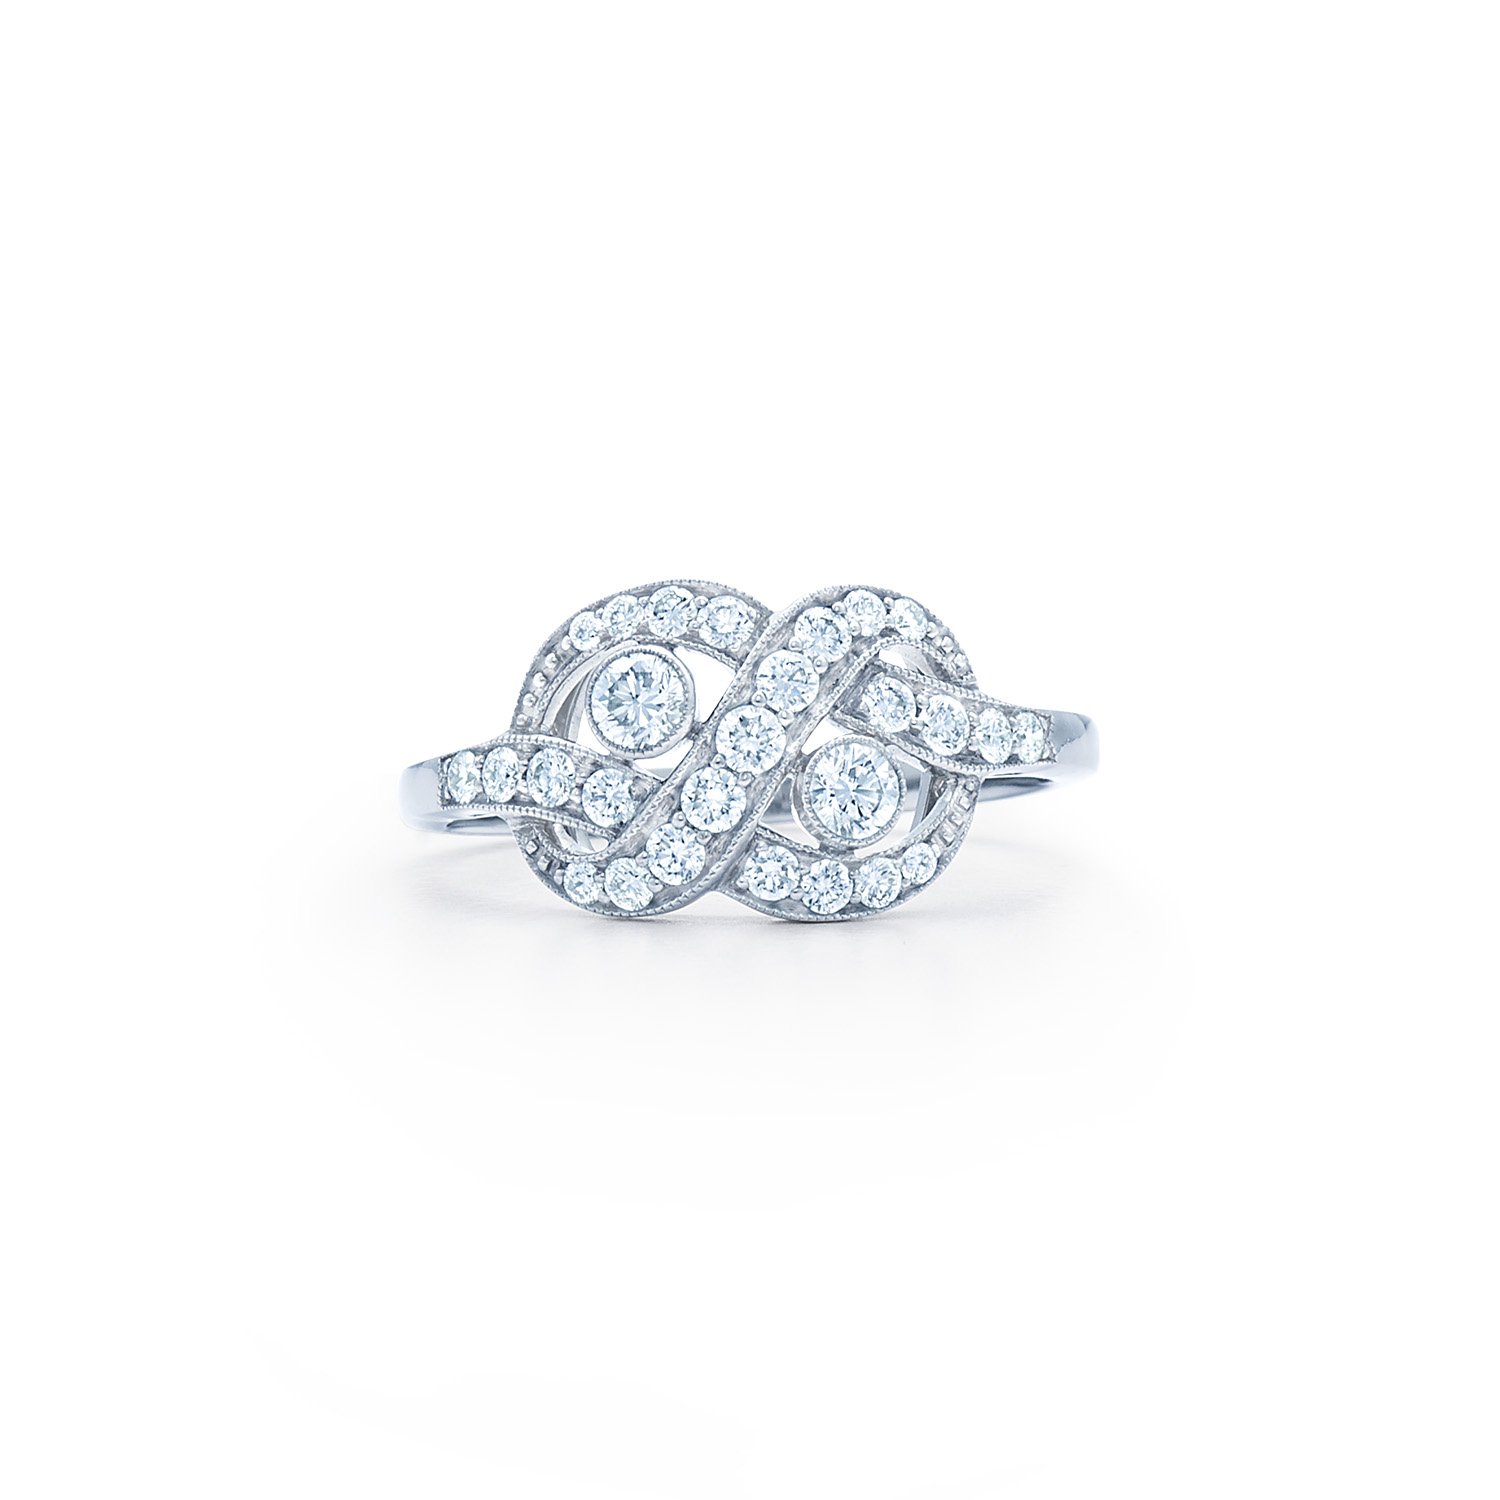 rings gallery wedding in ring style splendor kwiat white diamond